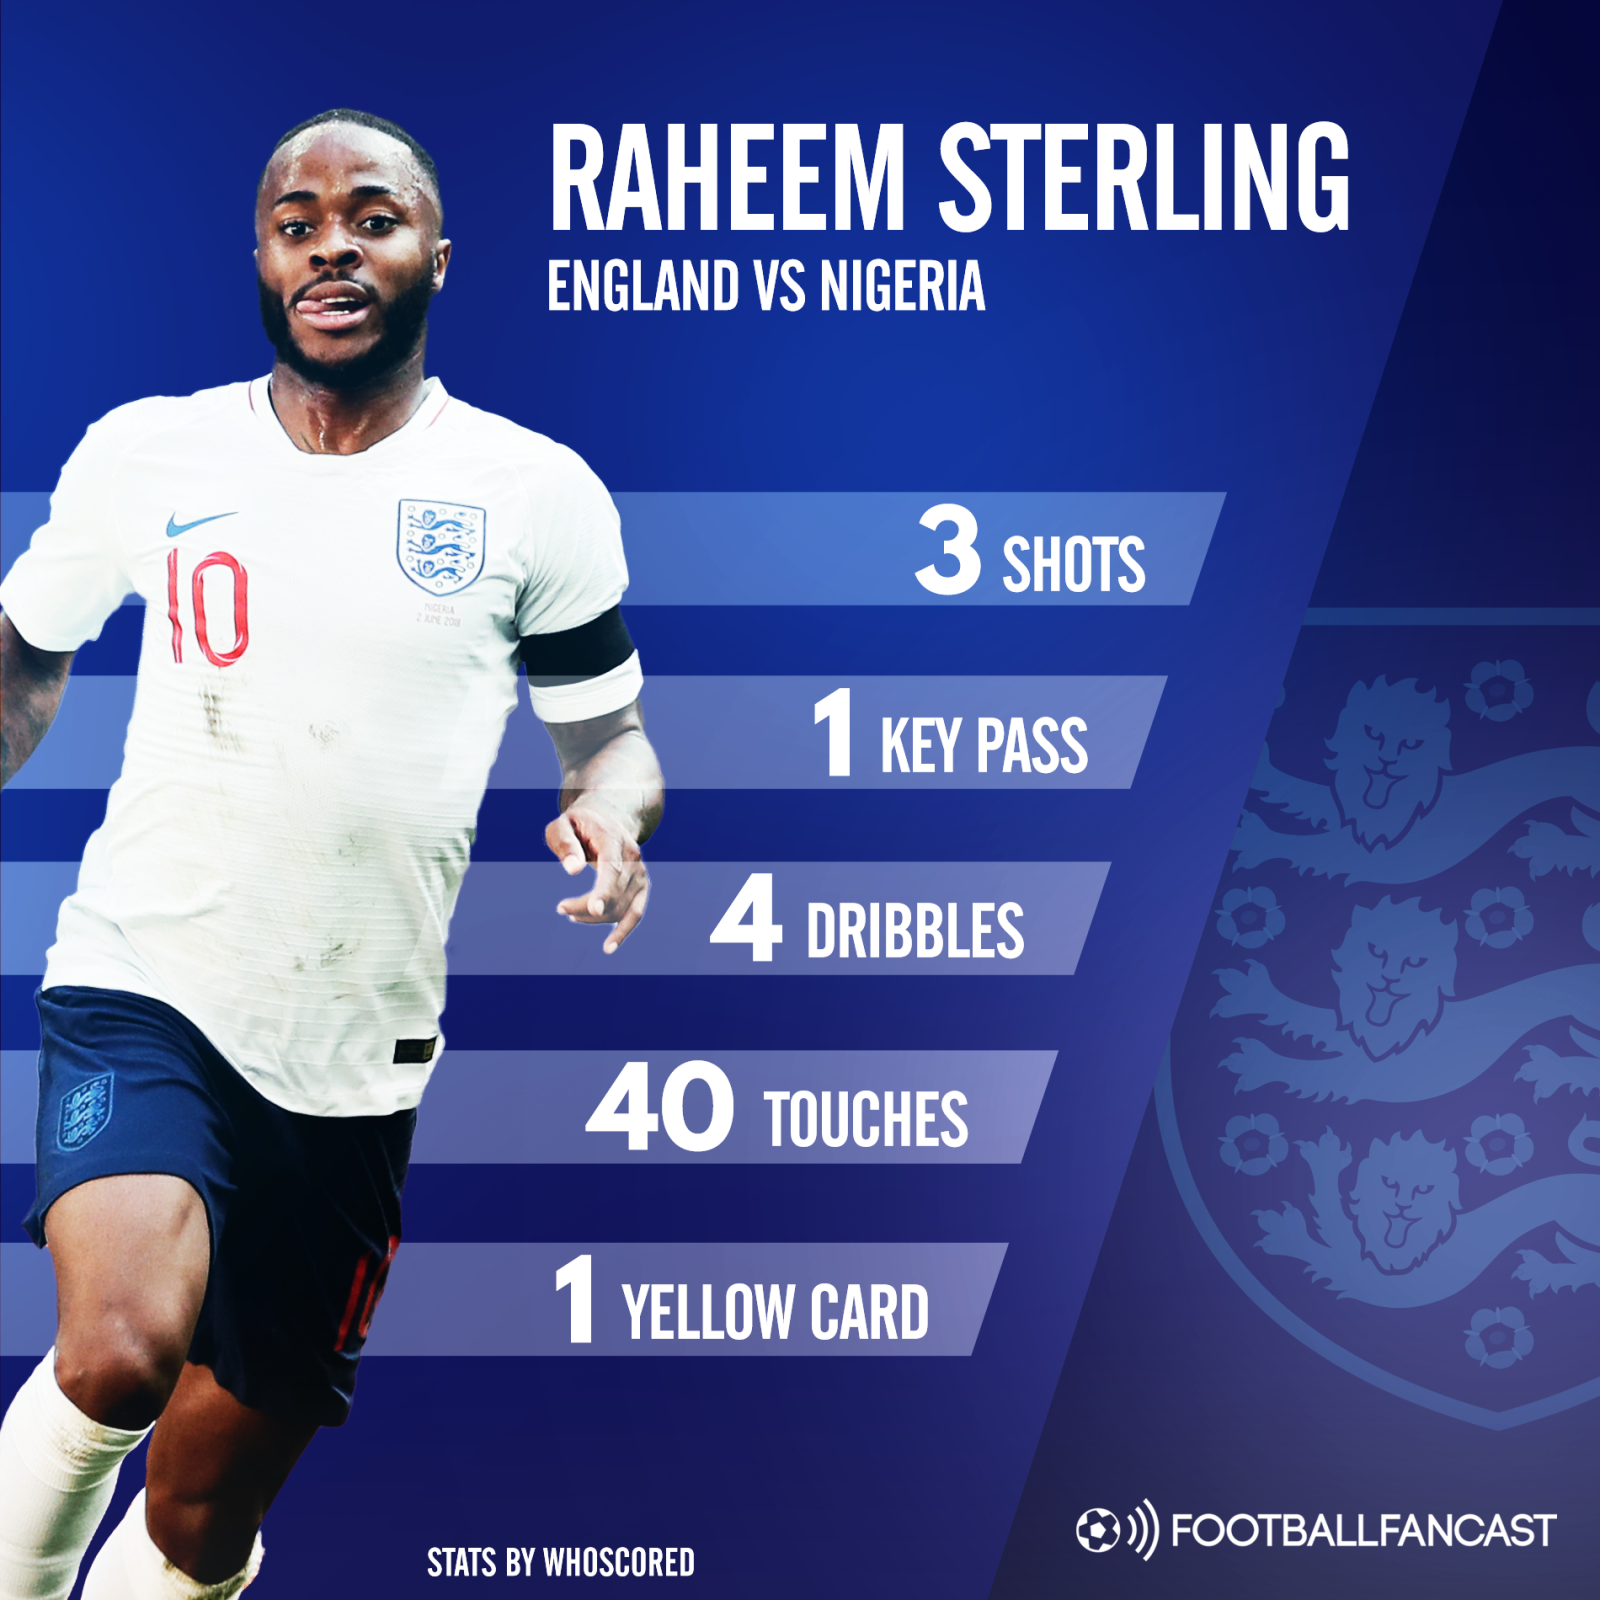 Raheem Sterling's stats from England's win over Nigeria